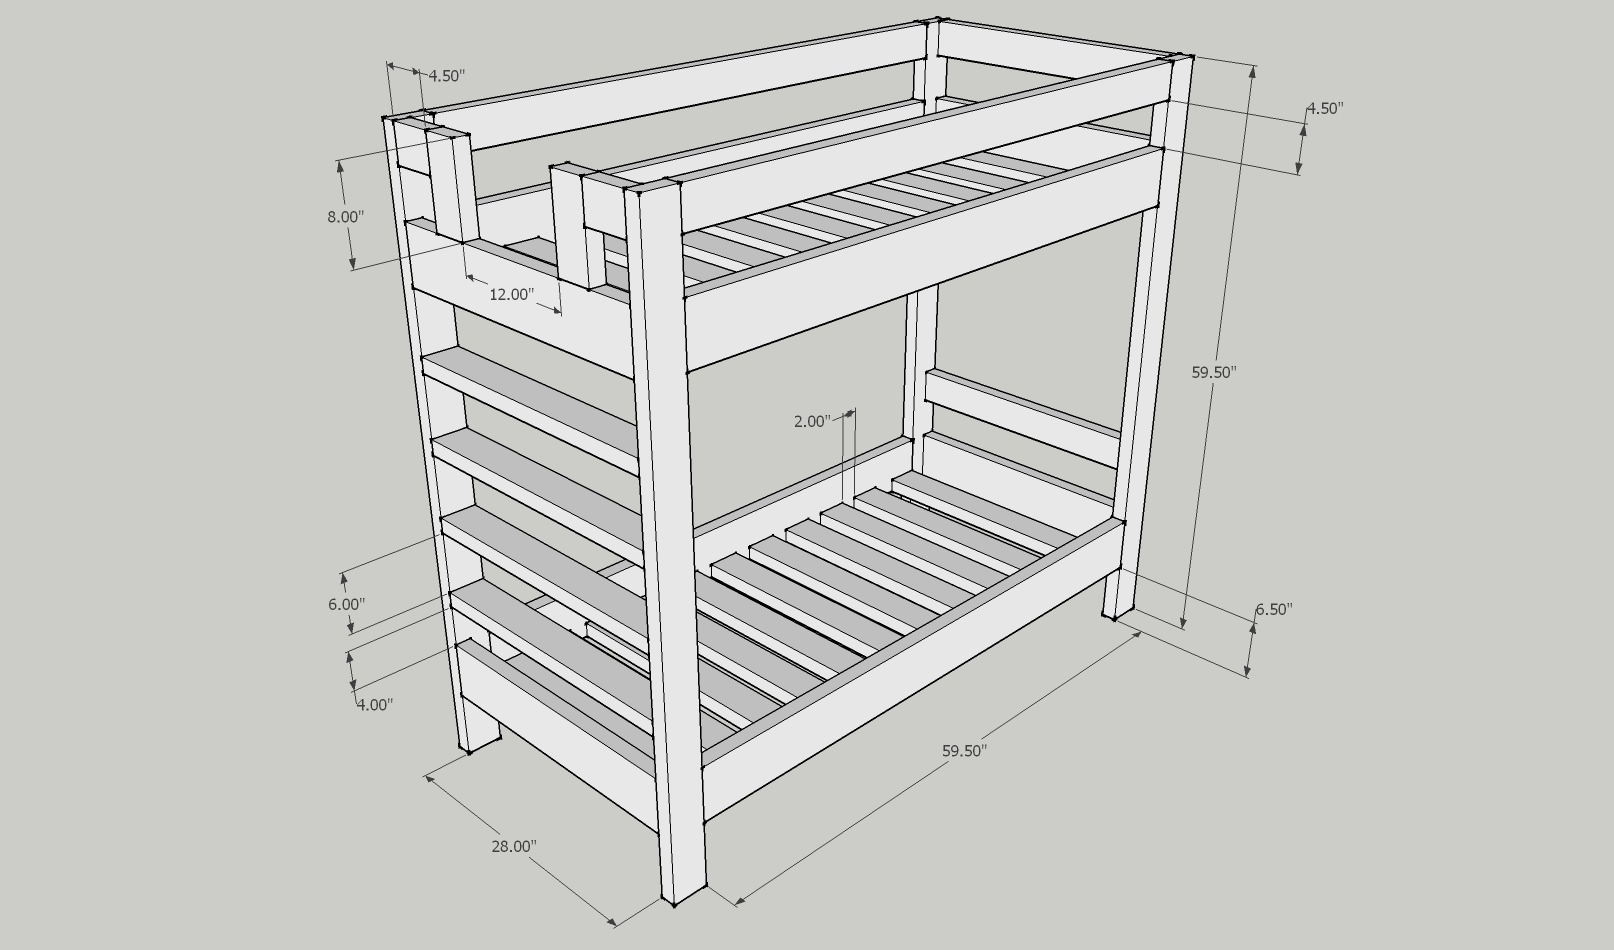 2x4 bunk bed plans Easy to build bed plans These bed plans ...